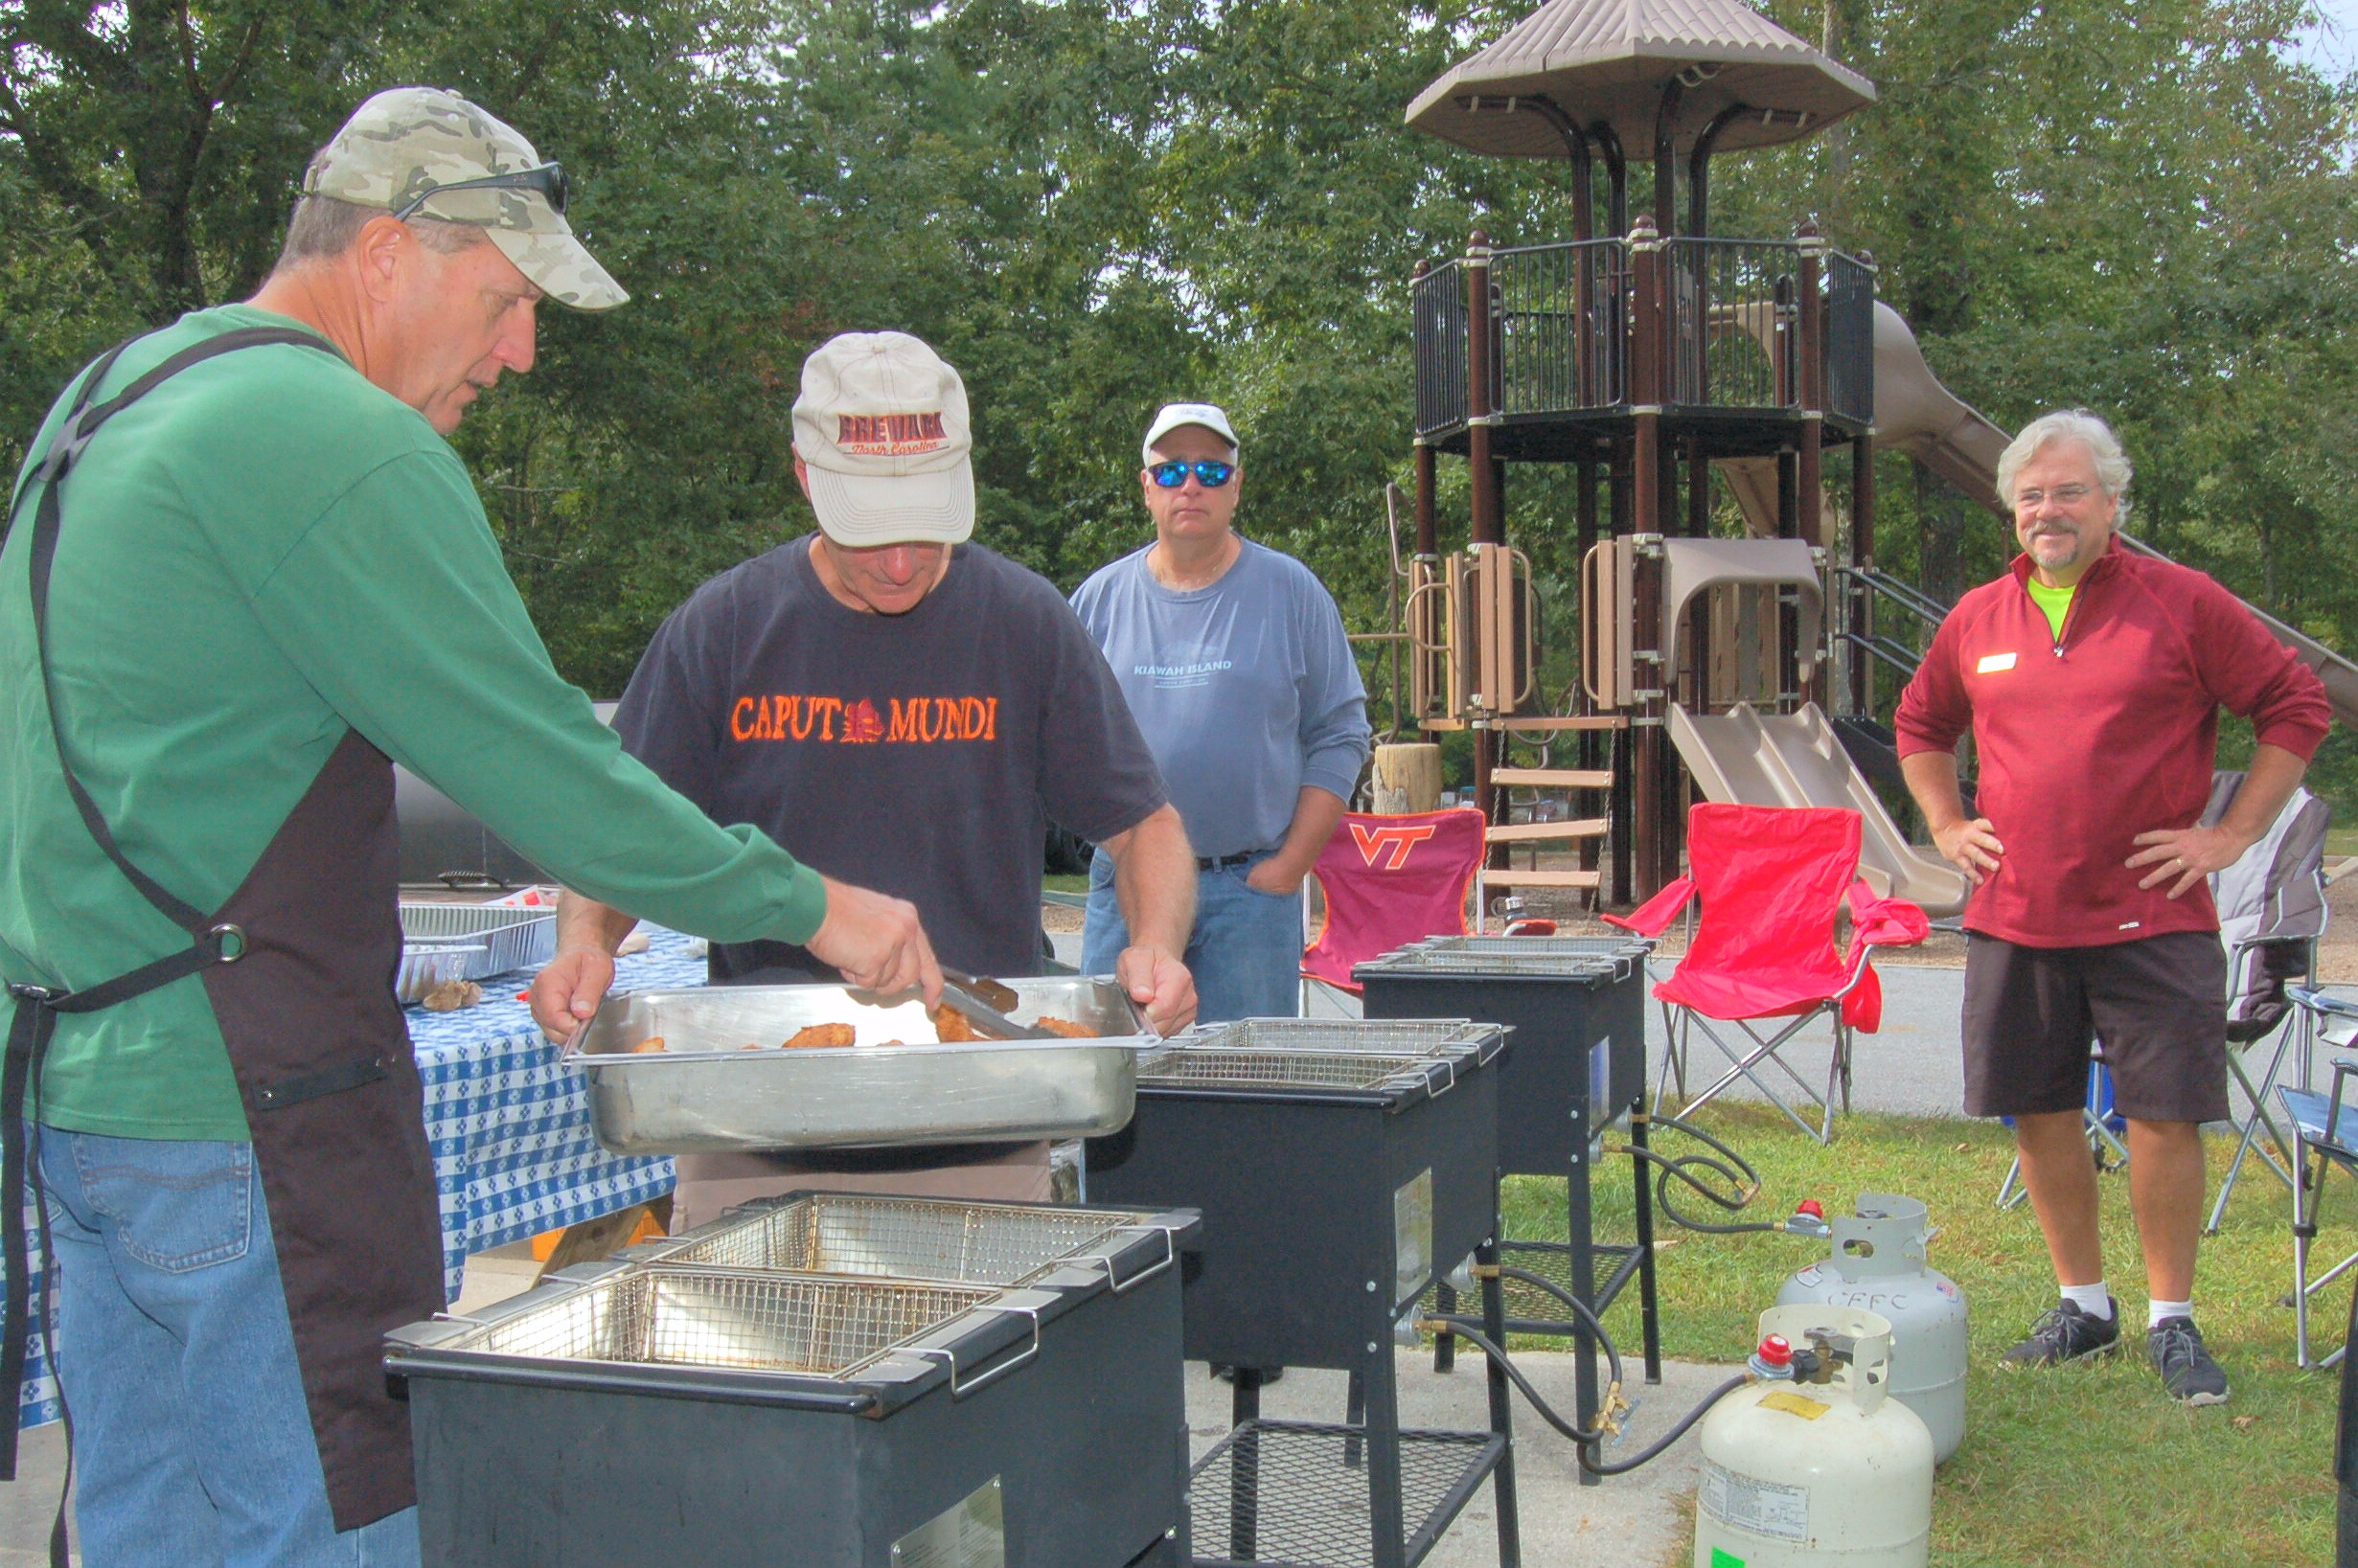 Club President Jim Bailey watches Joe Mihelcic, T.J. Kopt and Mike Huckabey deep fry some 200 catfish filets.